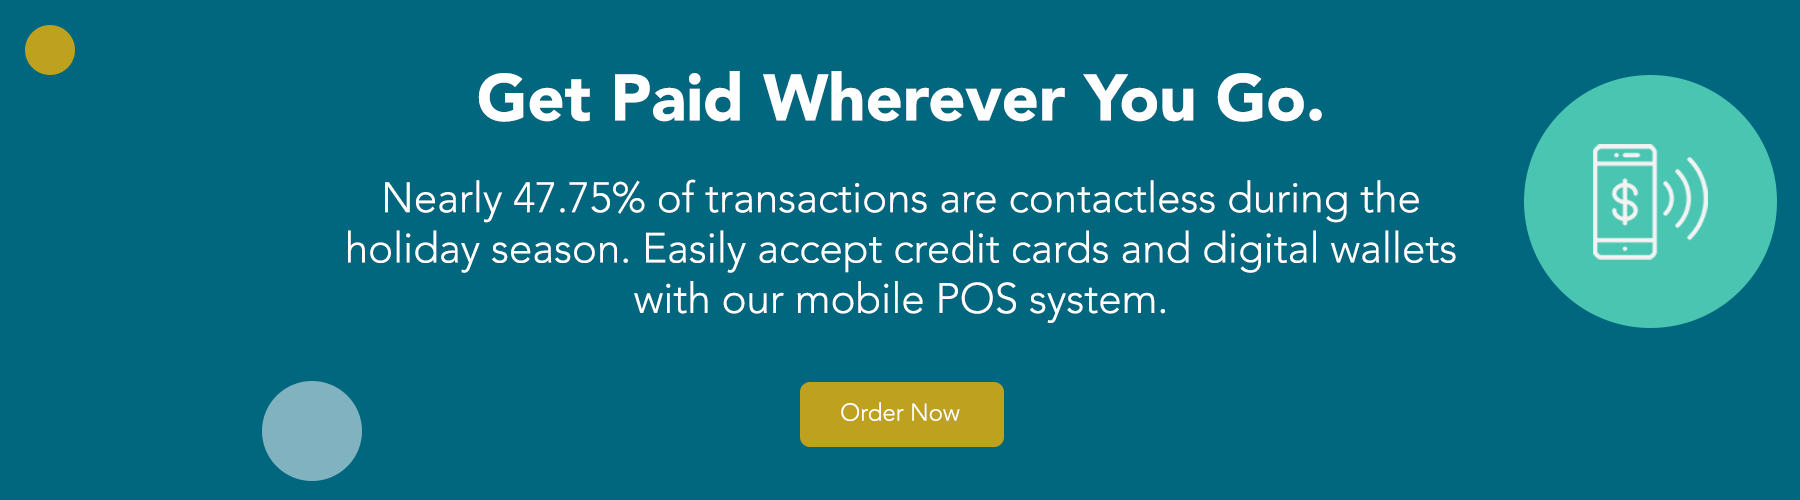 Get paid wherever you go. Nearly 47.75% of transactions are contactless during the holiday season. Easily accept credit cards and digital wallets with our mobile POS system. Order Today.